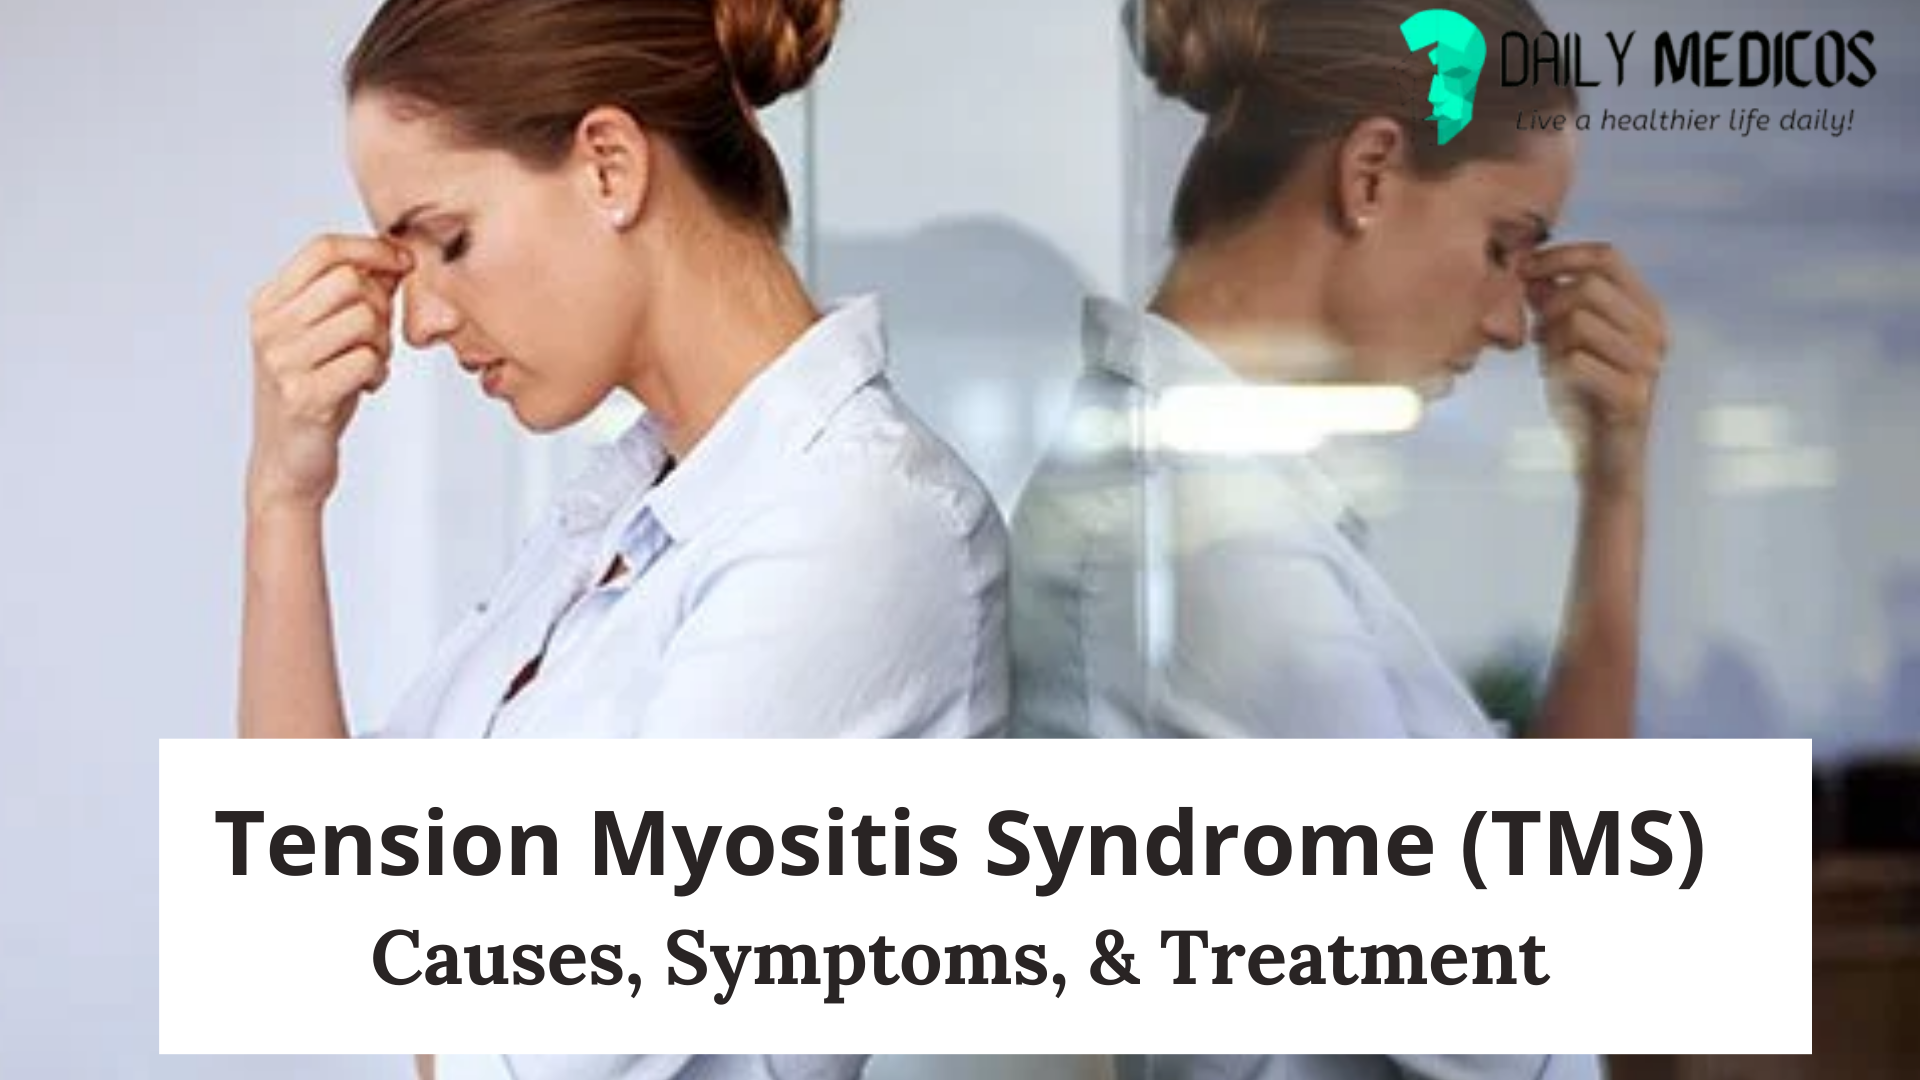 Tension Myositis Syndrome (TMS) [Causes, Symptoms, & Treatment] 19 - Daily Medicos